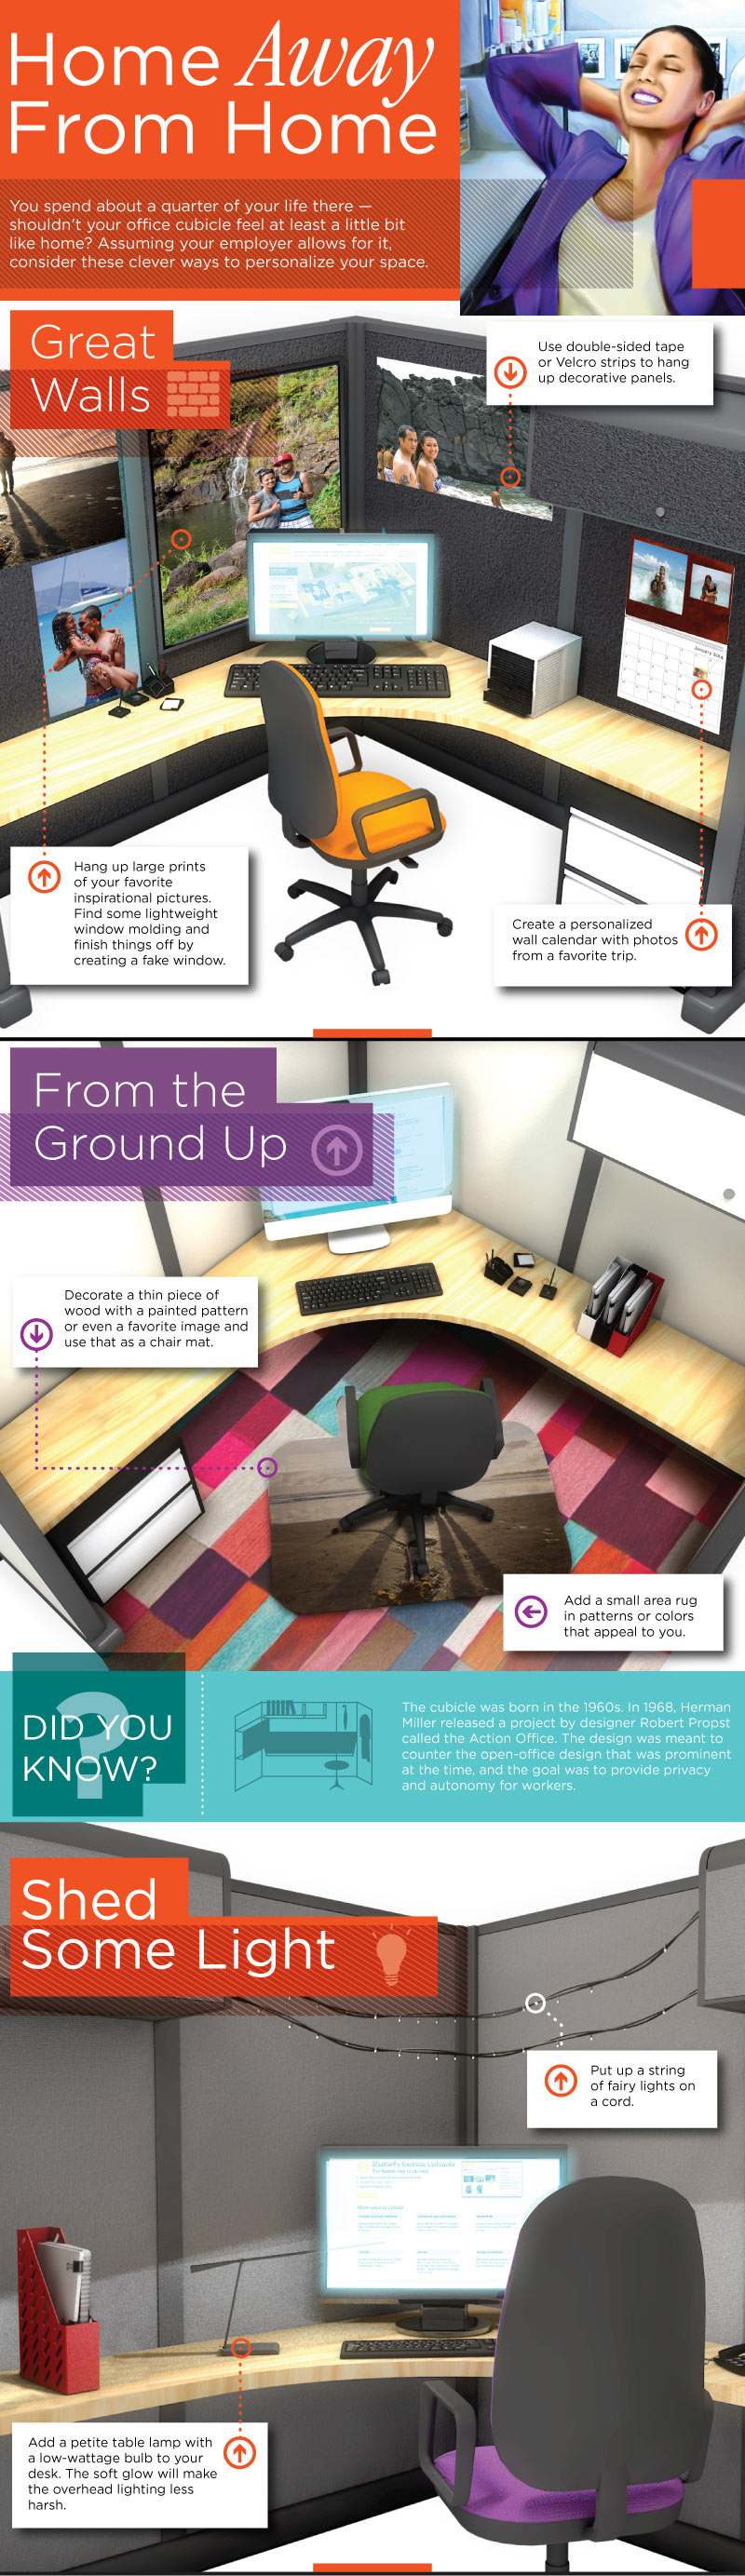 how-to-decorate-an-office-infographic-plaza